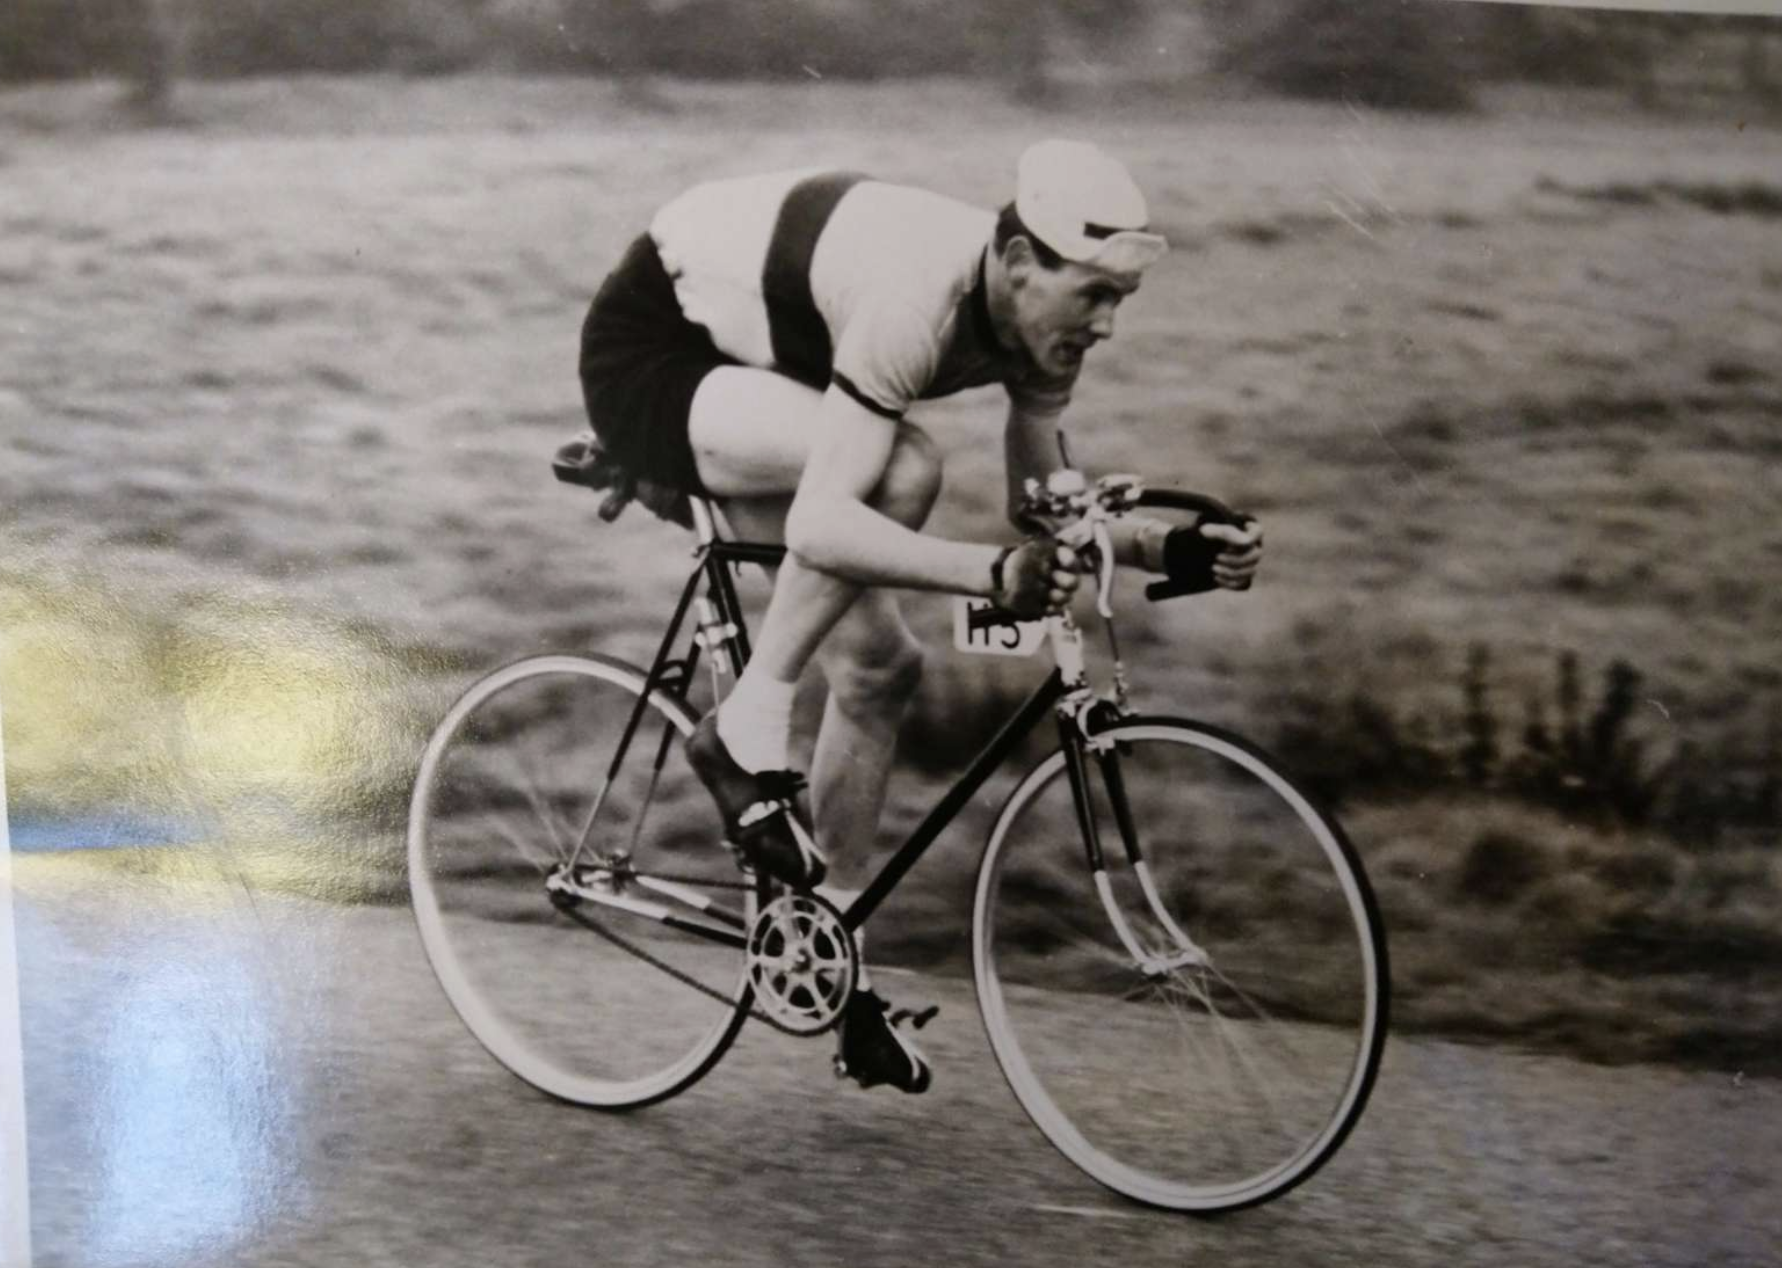 A man on a bicycle on a black and white photo.